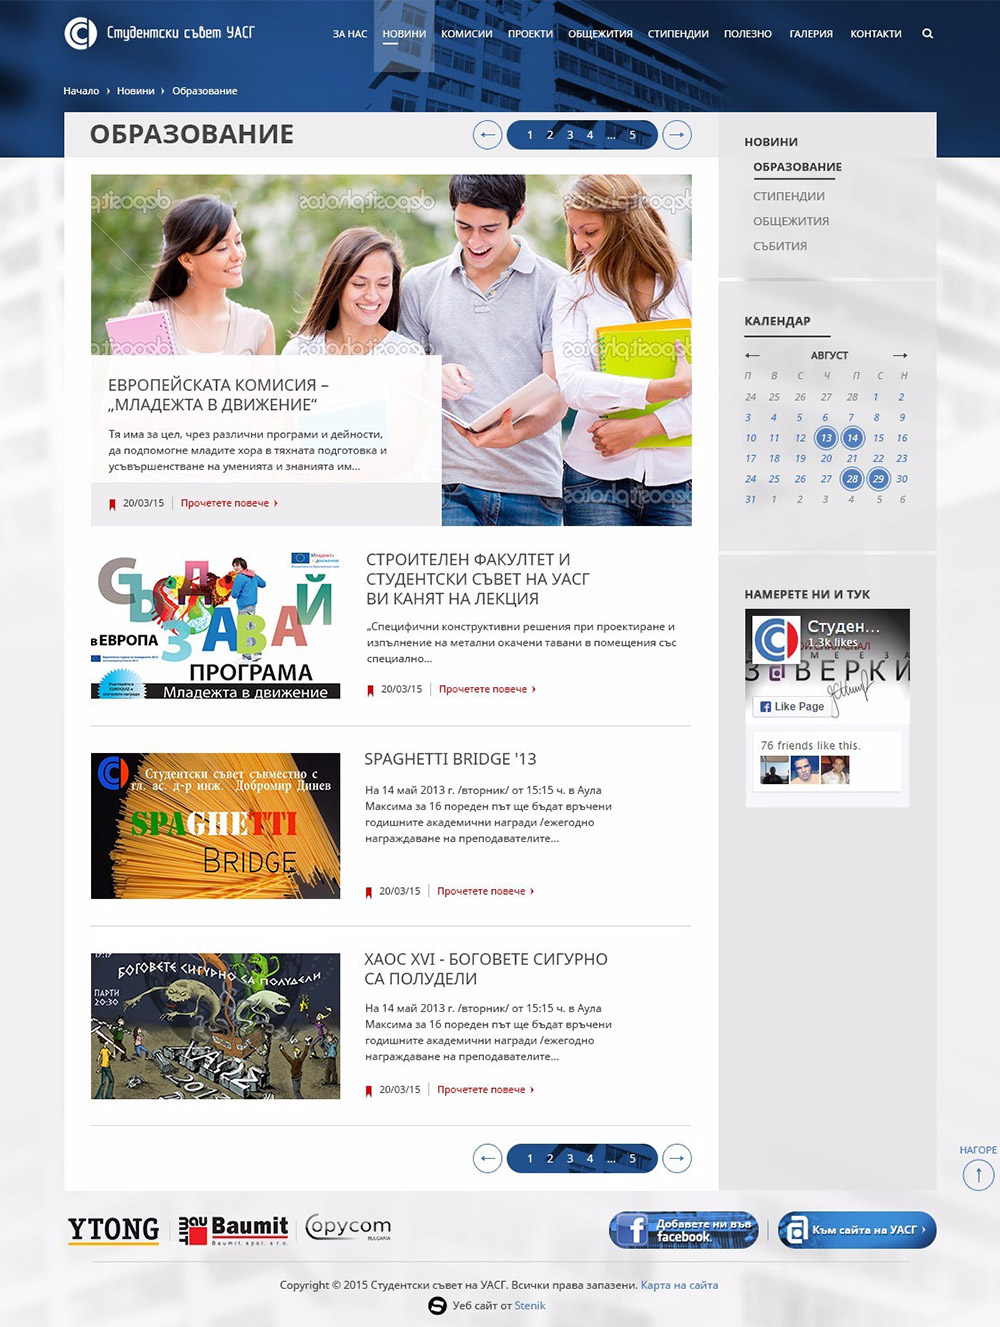 Web site for UASG, UASG - Web Sites, Stenik, StenikCMS